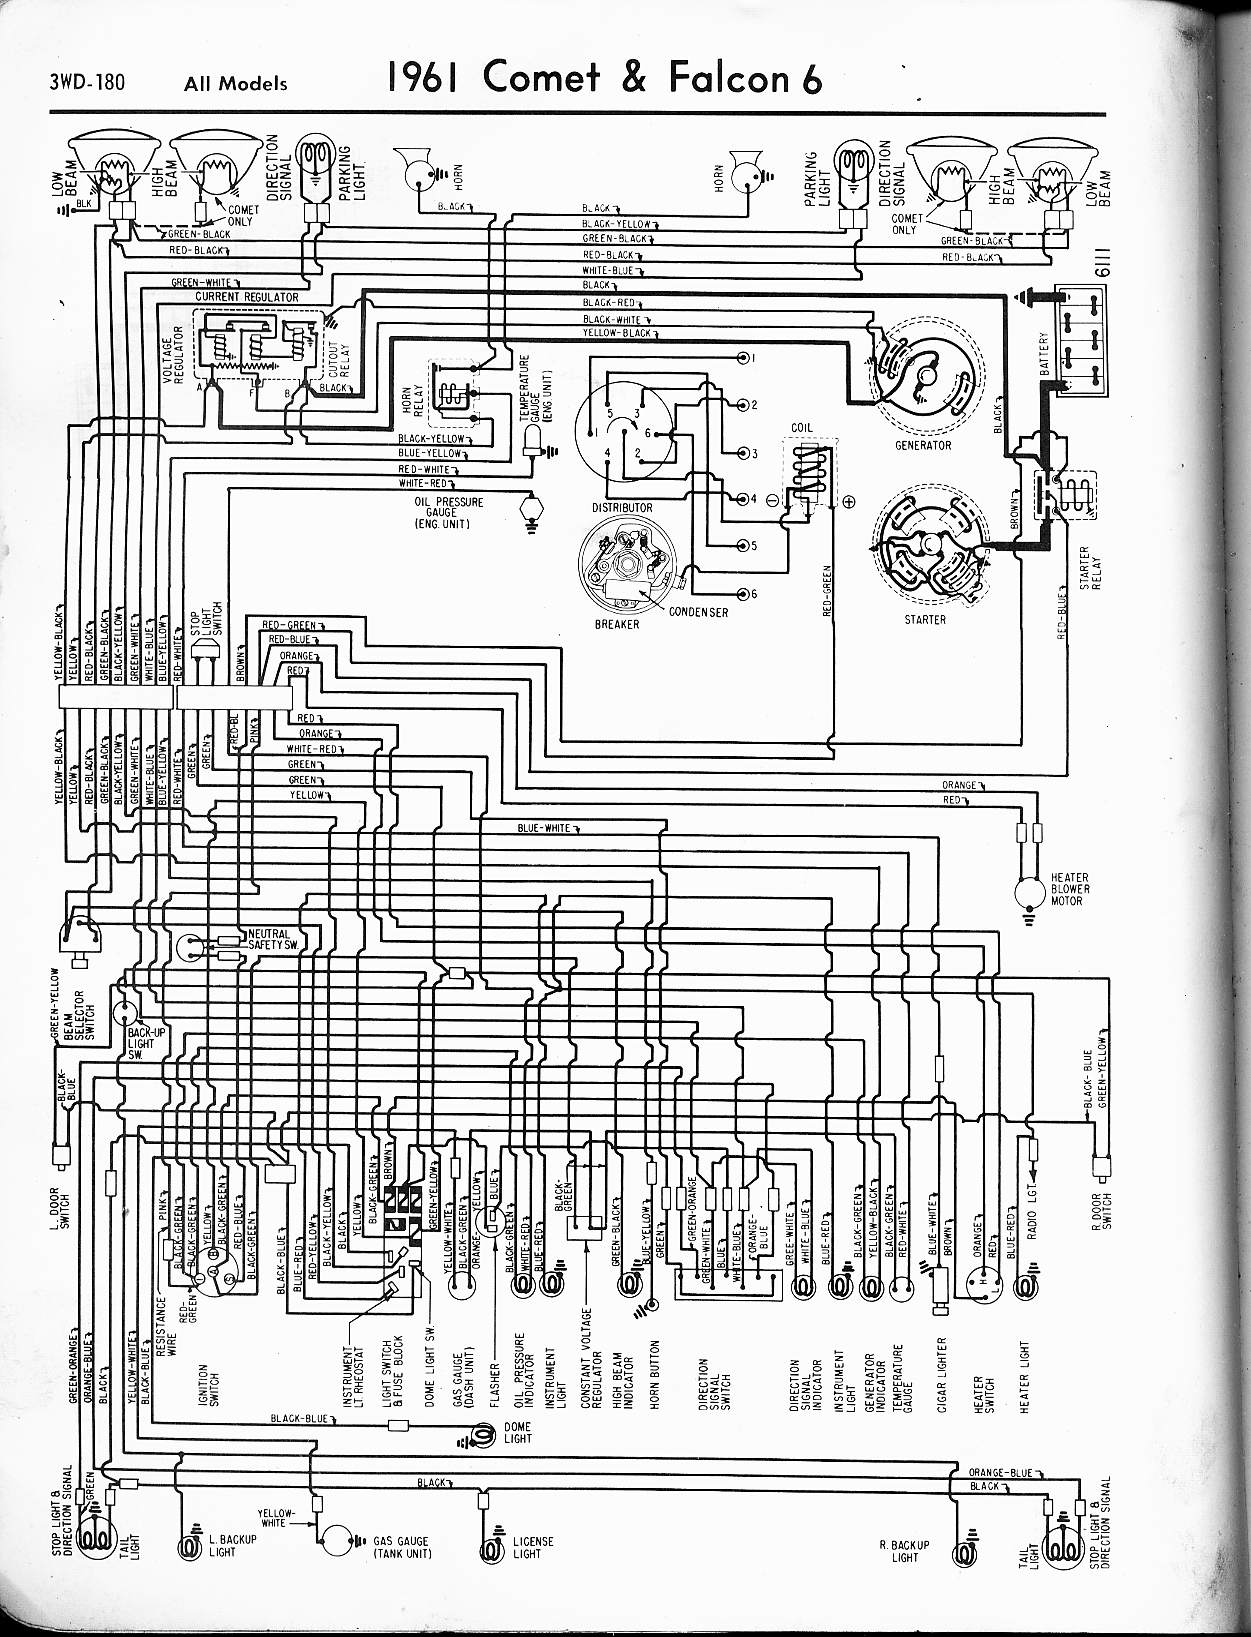 MWire5765 180 au falcon wiring diagram falcon guide \u2022 wiring diagrams j squared co  at crackthecode.co